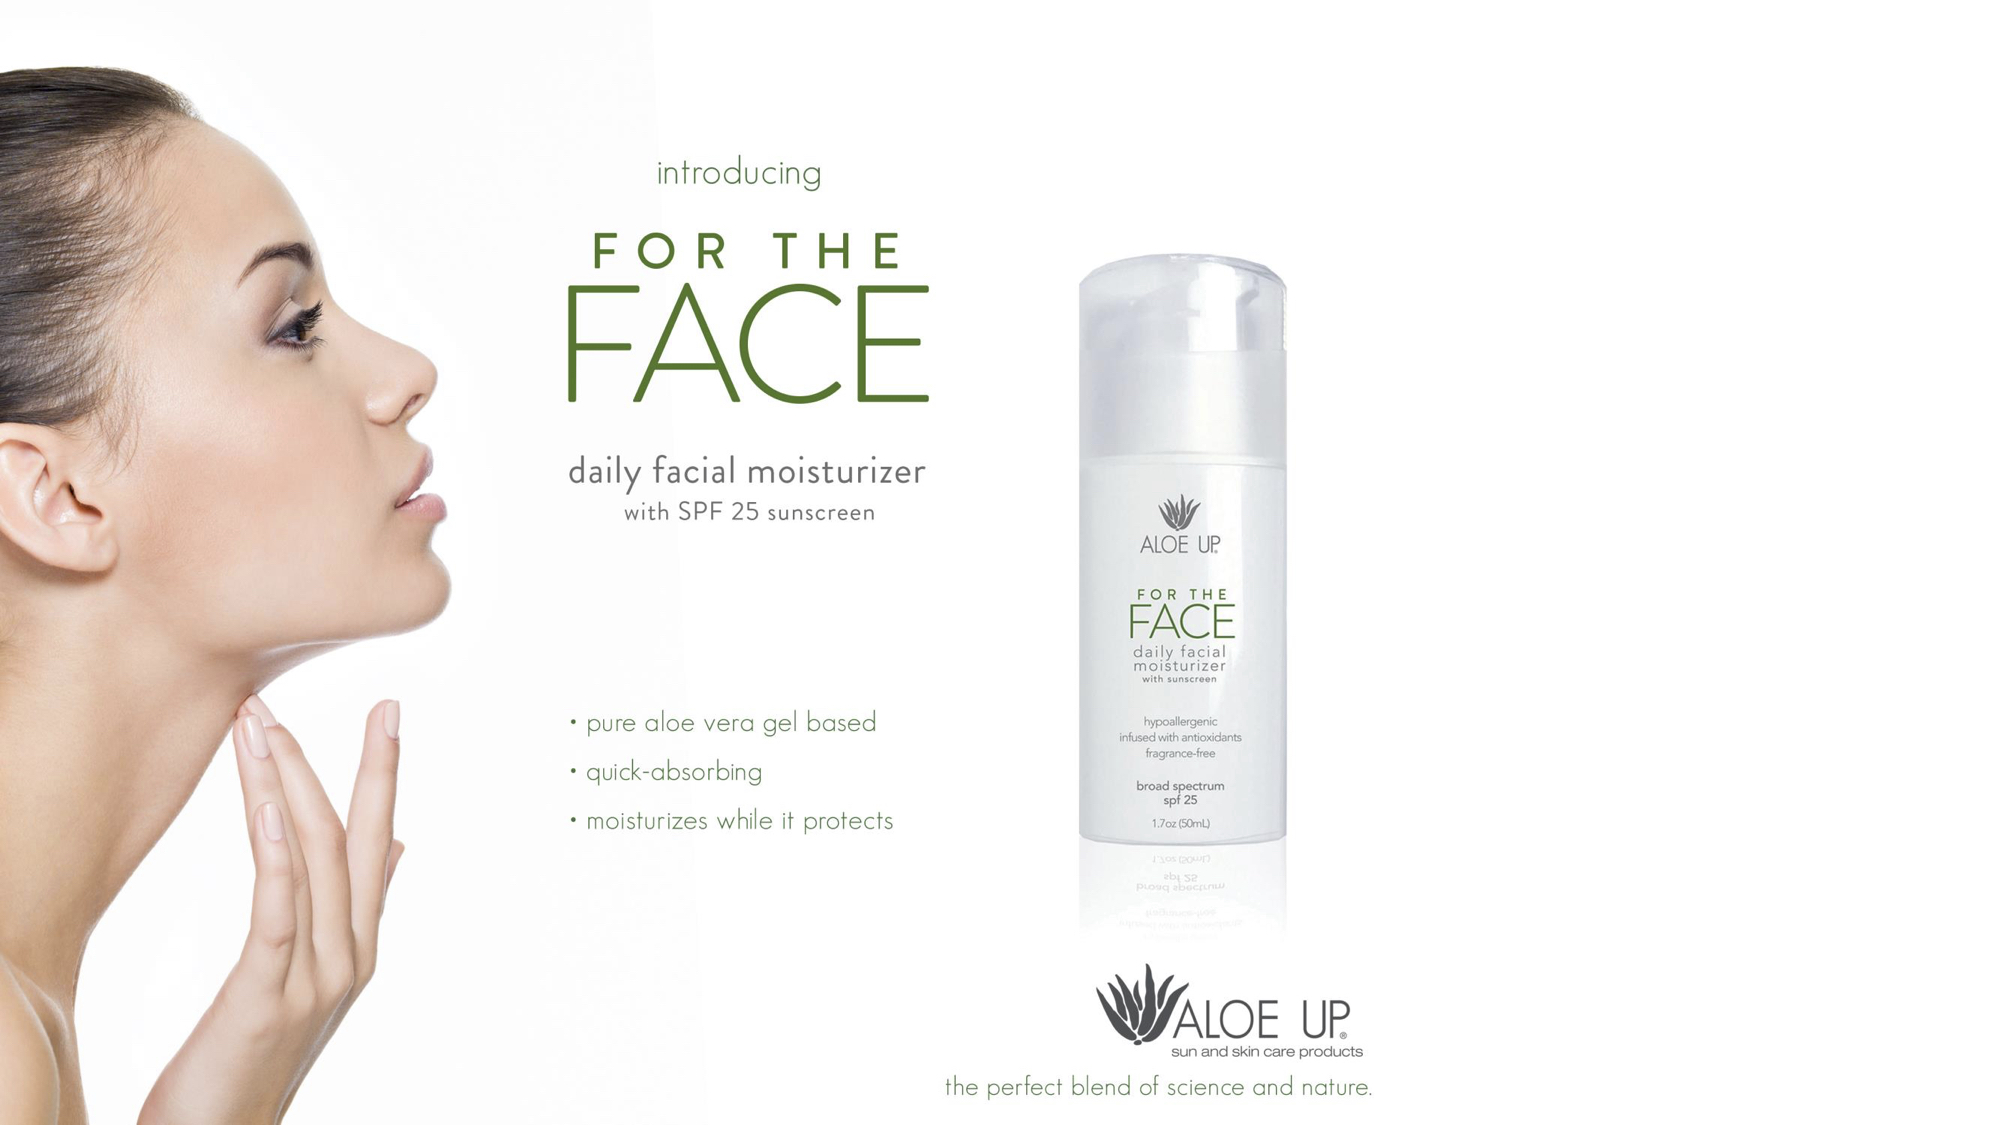 For The Face Retailer Launch Deck 2018.jpg